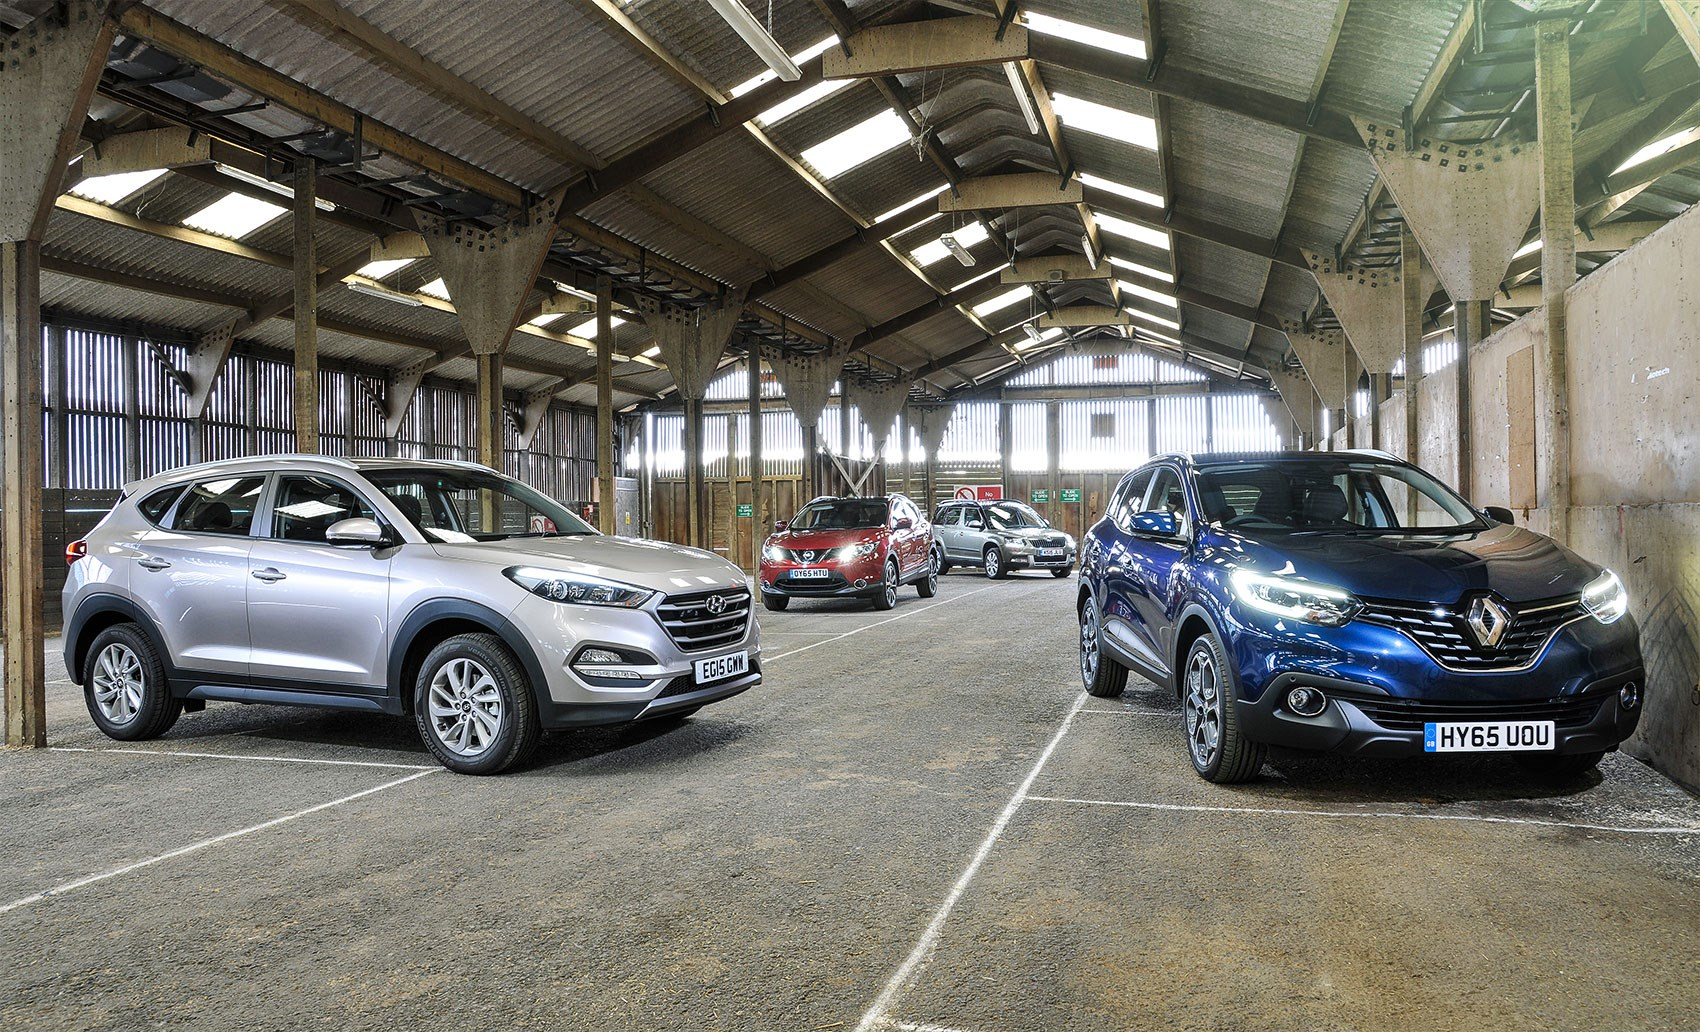 Renault Kadjar vs Hyundai Tucson vs Nissan Qashqai vs Skoda Yeti, quick group test, CAR+ January ...